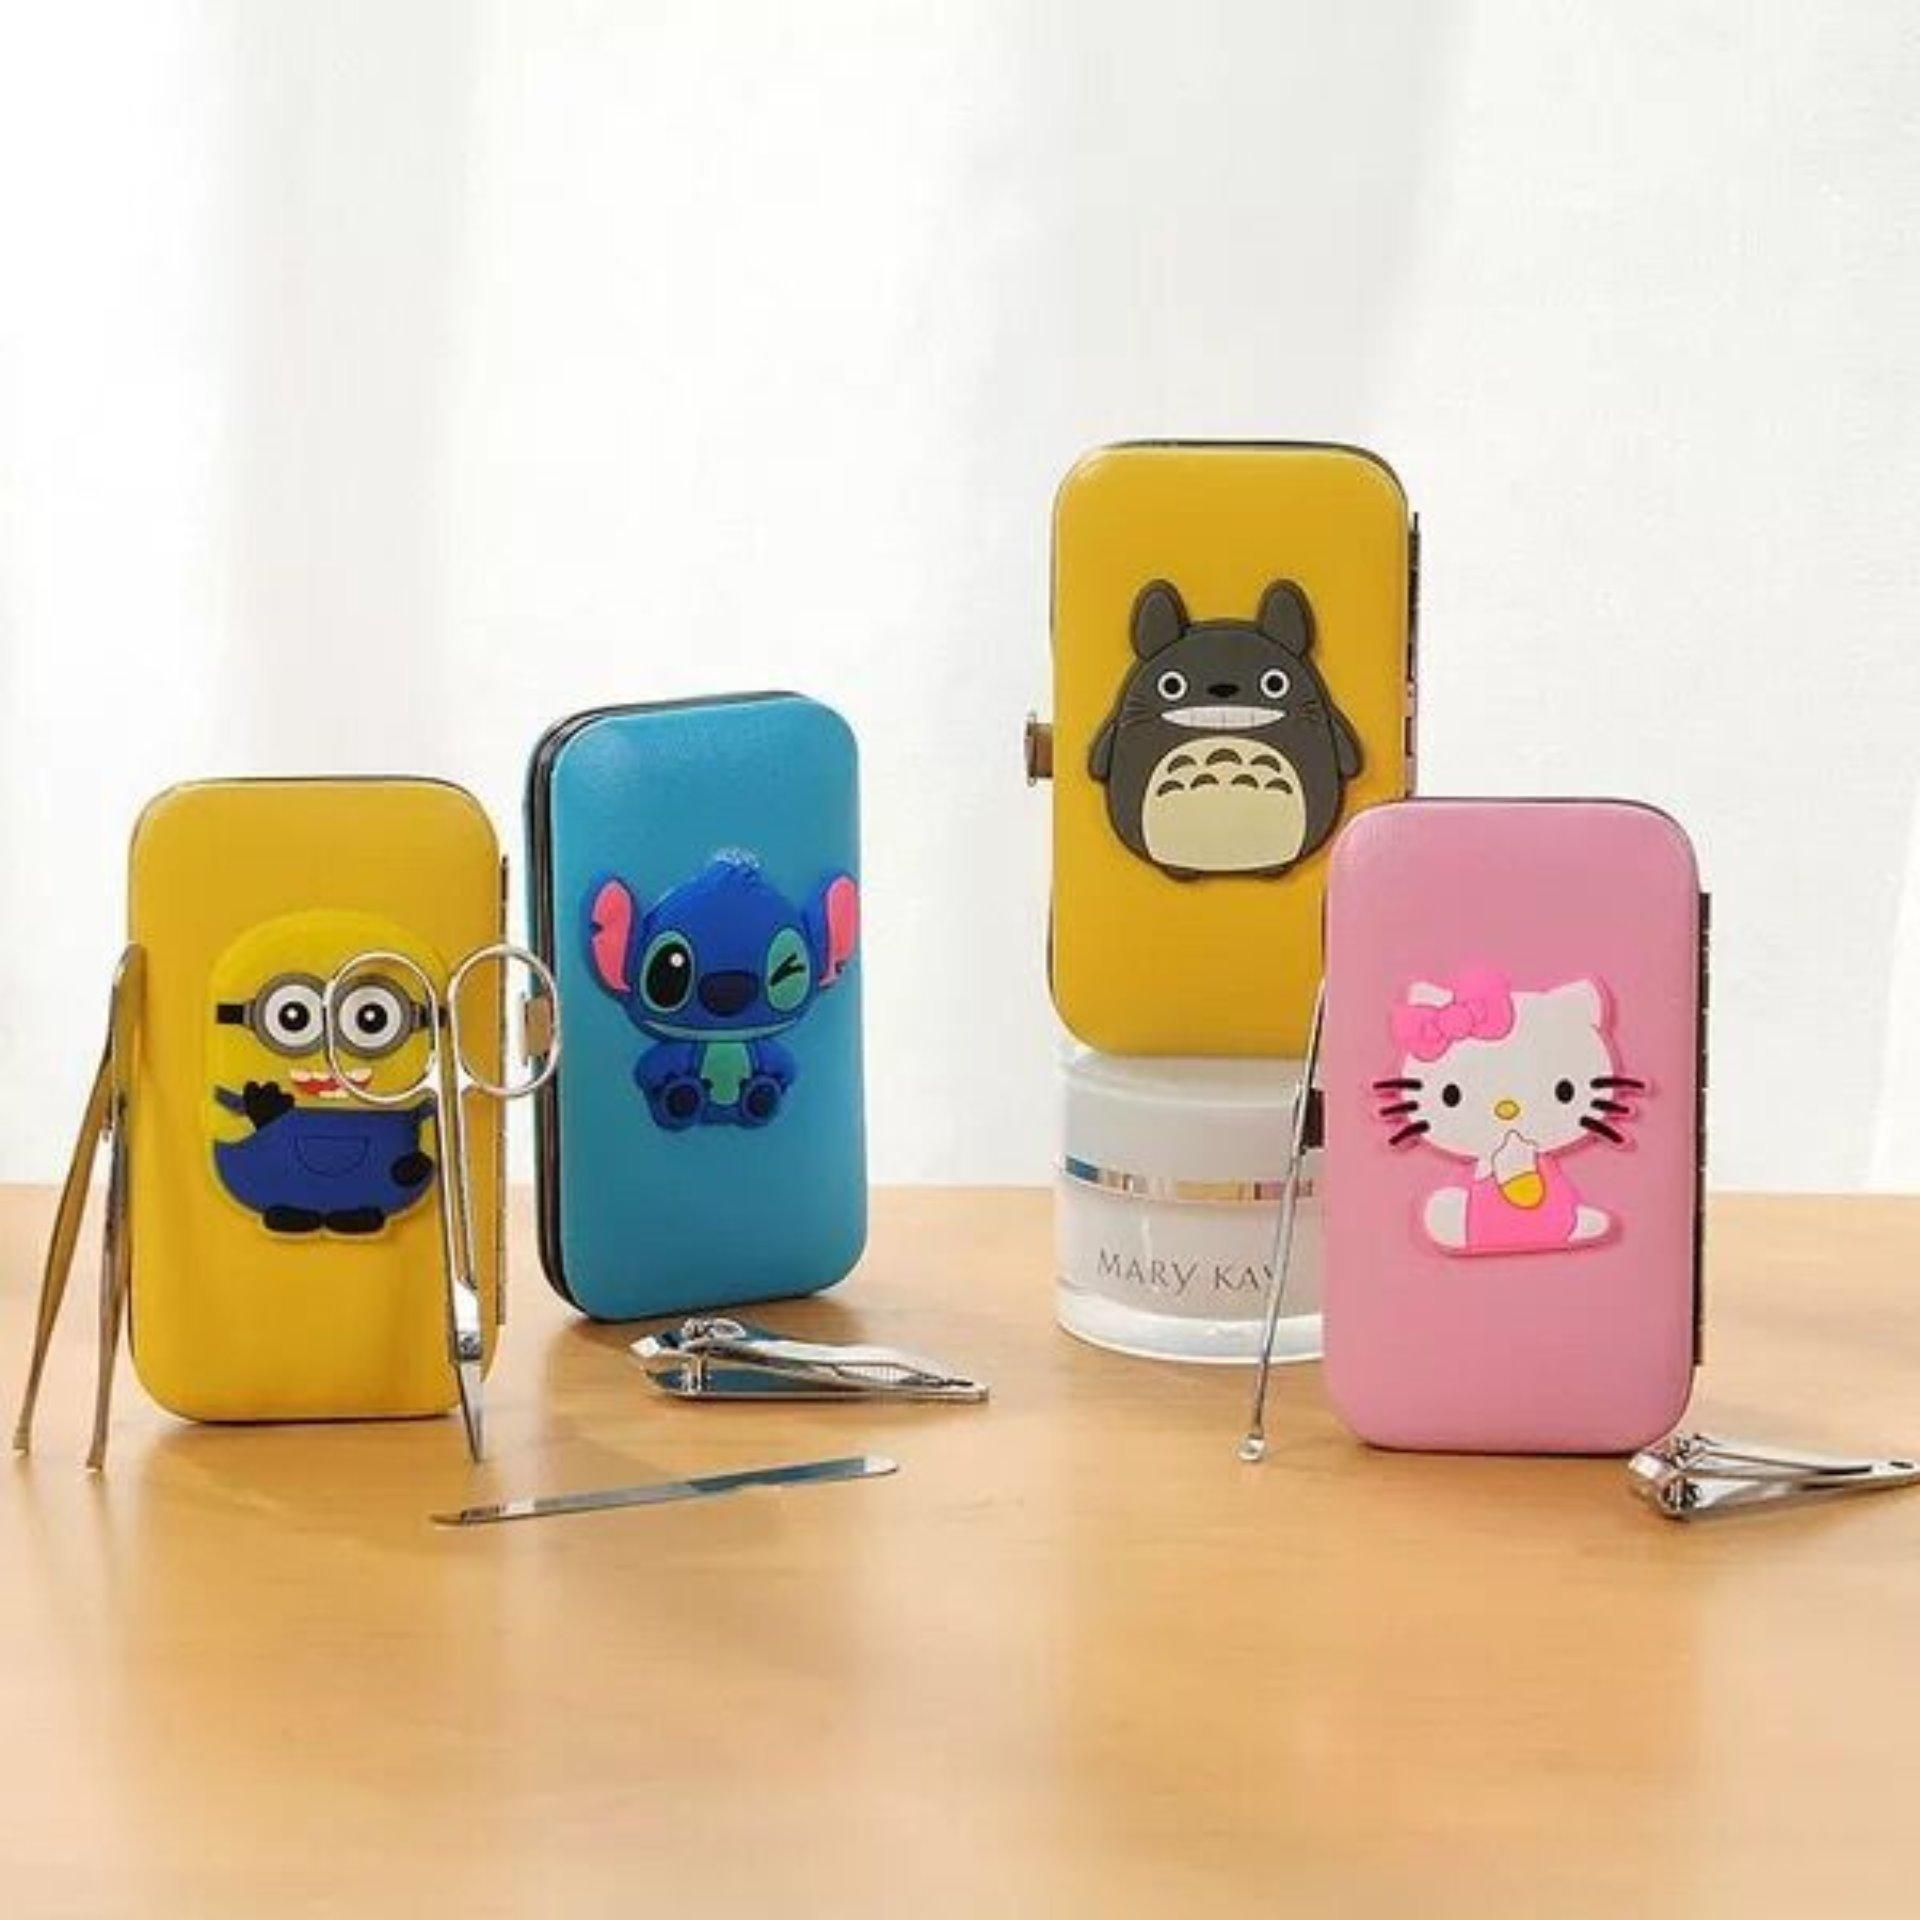 Fashionline Cartoon Character Manicure And Pedicure Nail Tool Set Philippines